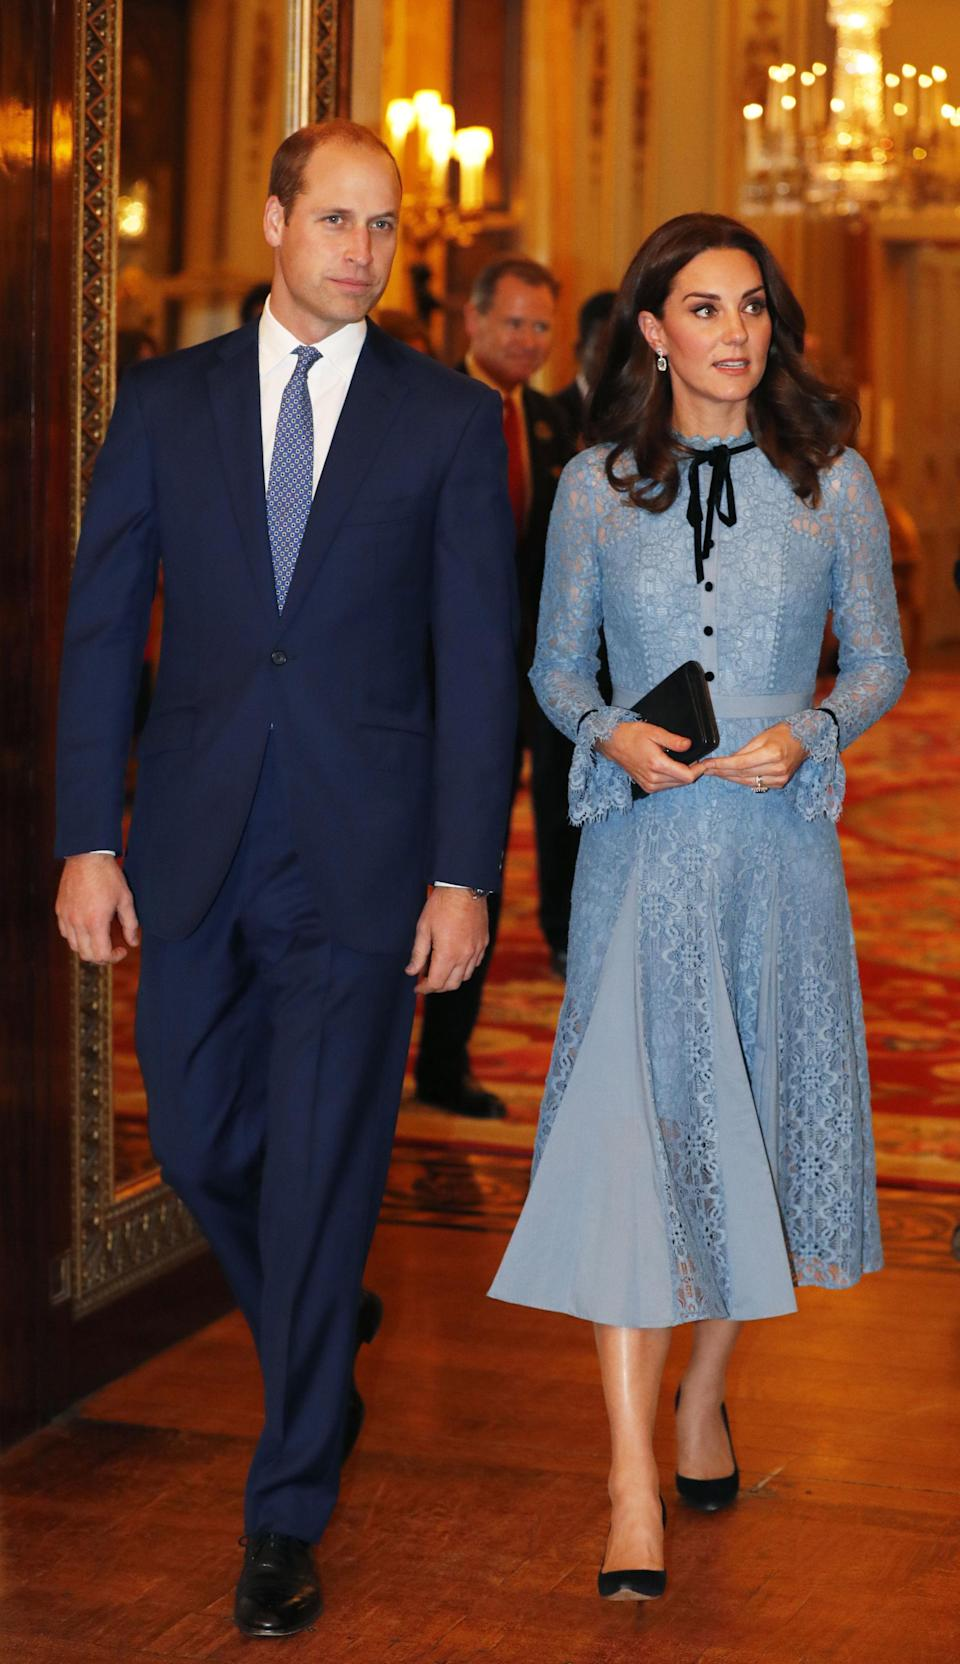 <p>The Duchess made her first public appearance after announcing that she was pregnant with her third child at Buckingham Palace on October 10. She opted for a blue lace dress by Temperley London known as the 'Eclipse' gown. <em>[Photo: Getty]</em> </p>